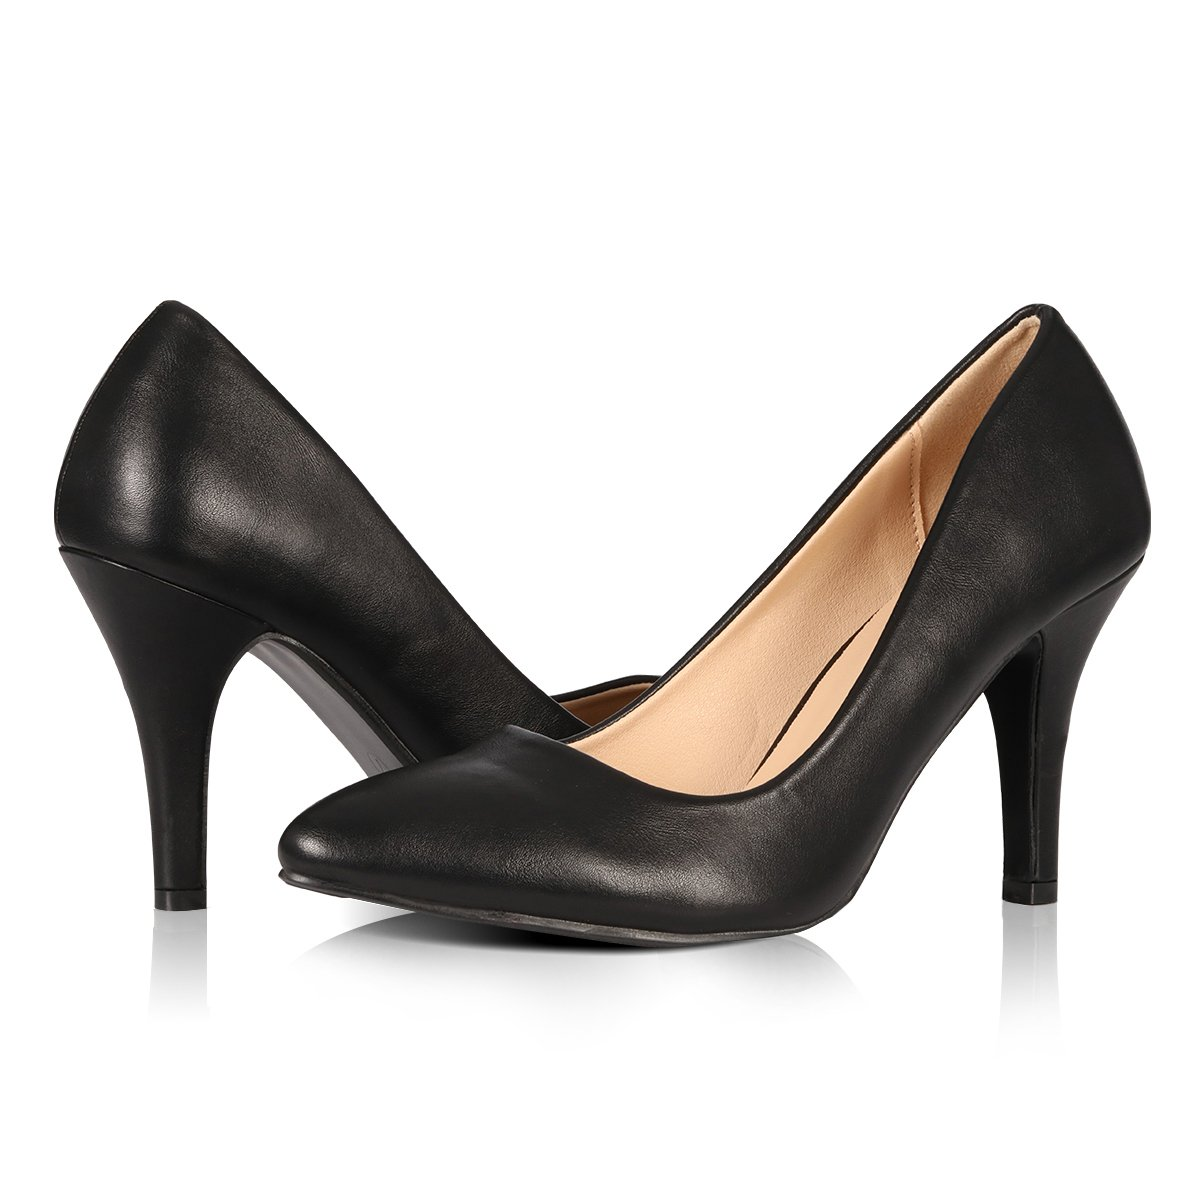 Yeviavy High Heels - Women's Pumps Stiletto Pointy Toed Dress Fashion Shoes JennaN Black PU 7.5